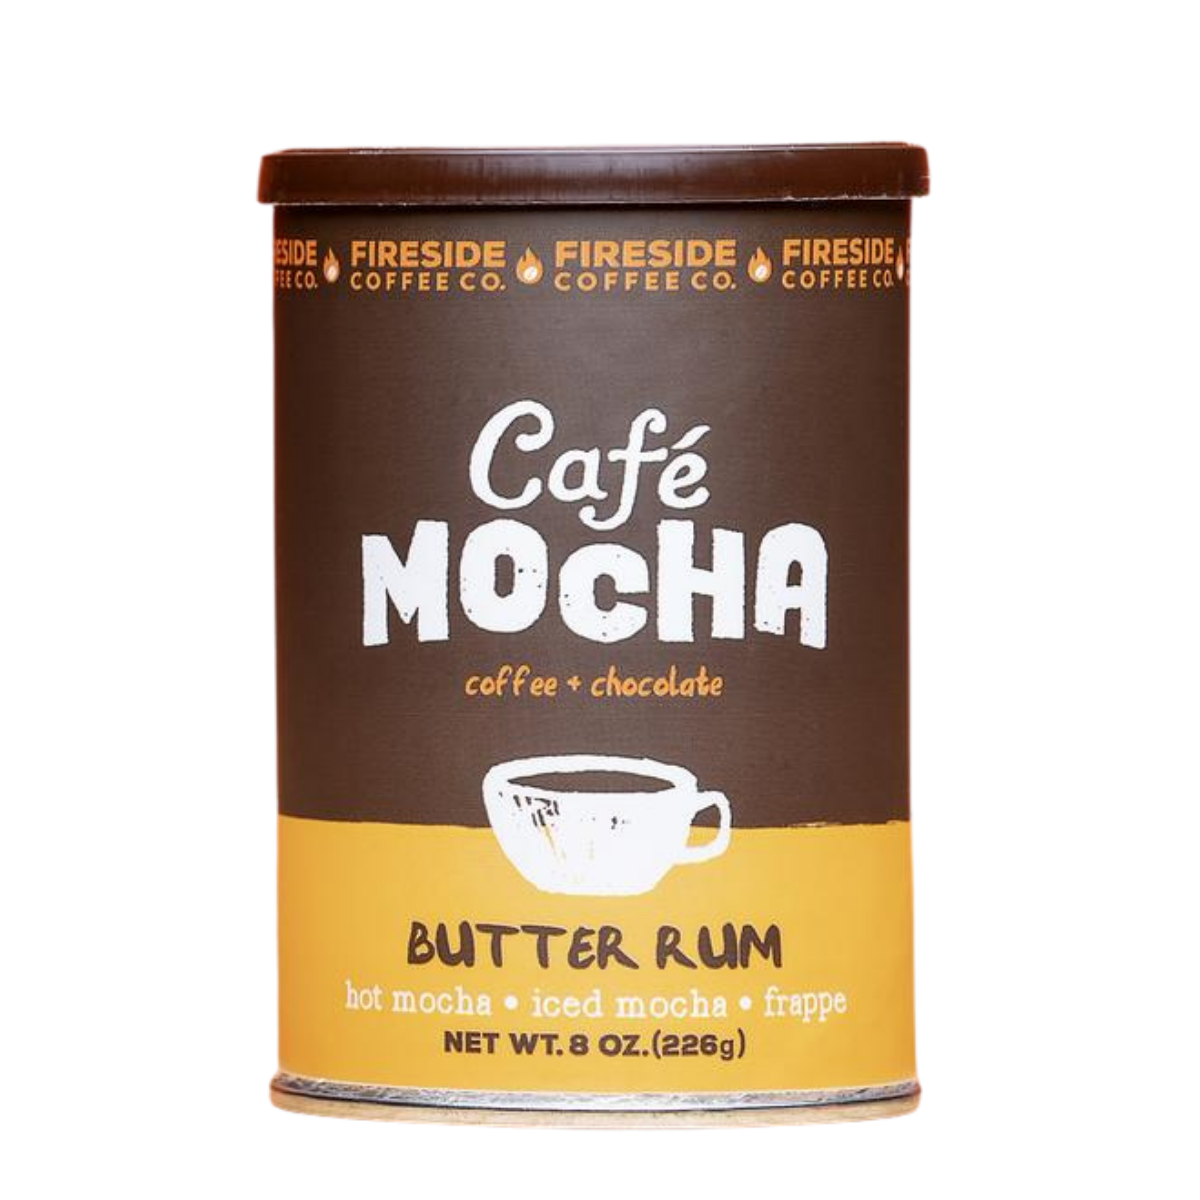 Butter Rum Cafe Mocha - Offensive Mug